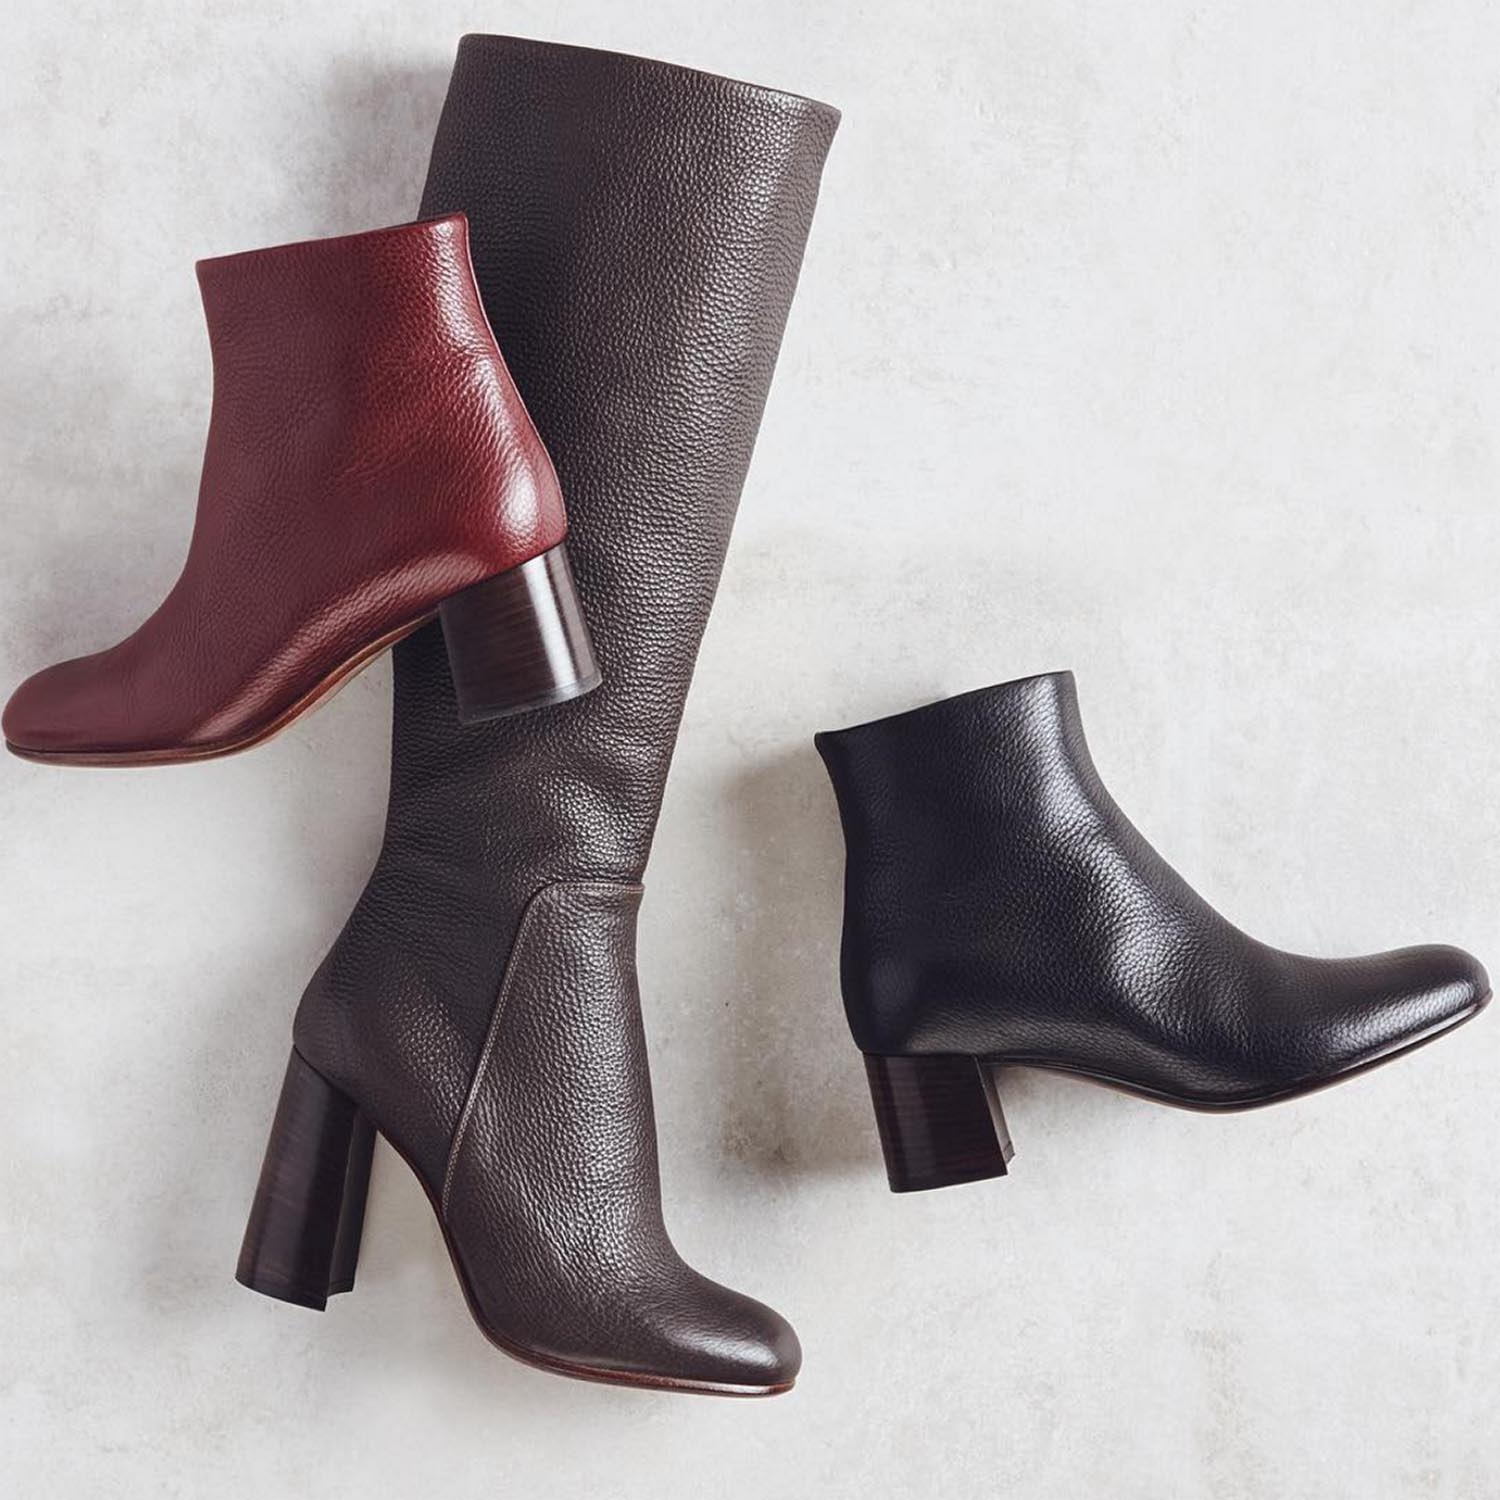 fall-boot-guide-for-budget-friendly-and-splurge-price-points